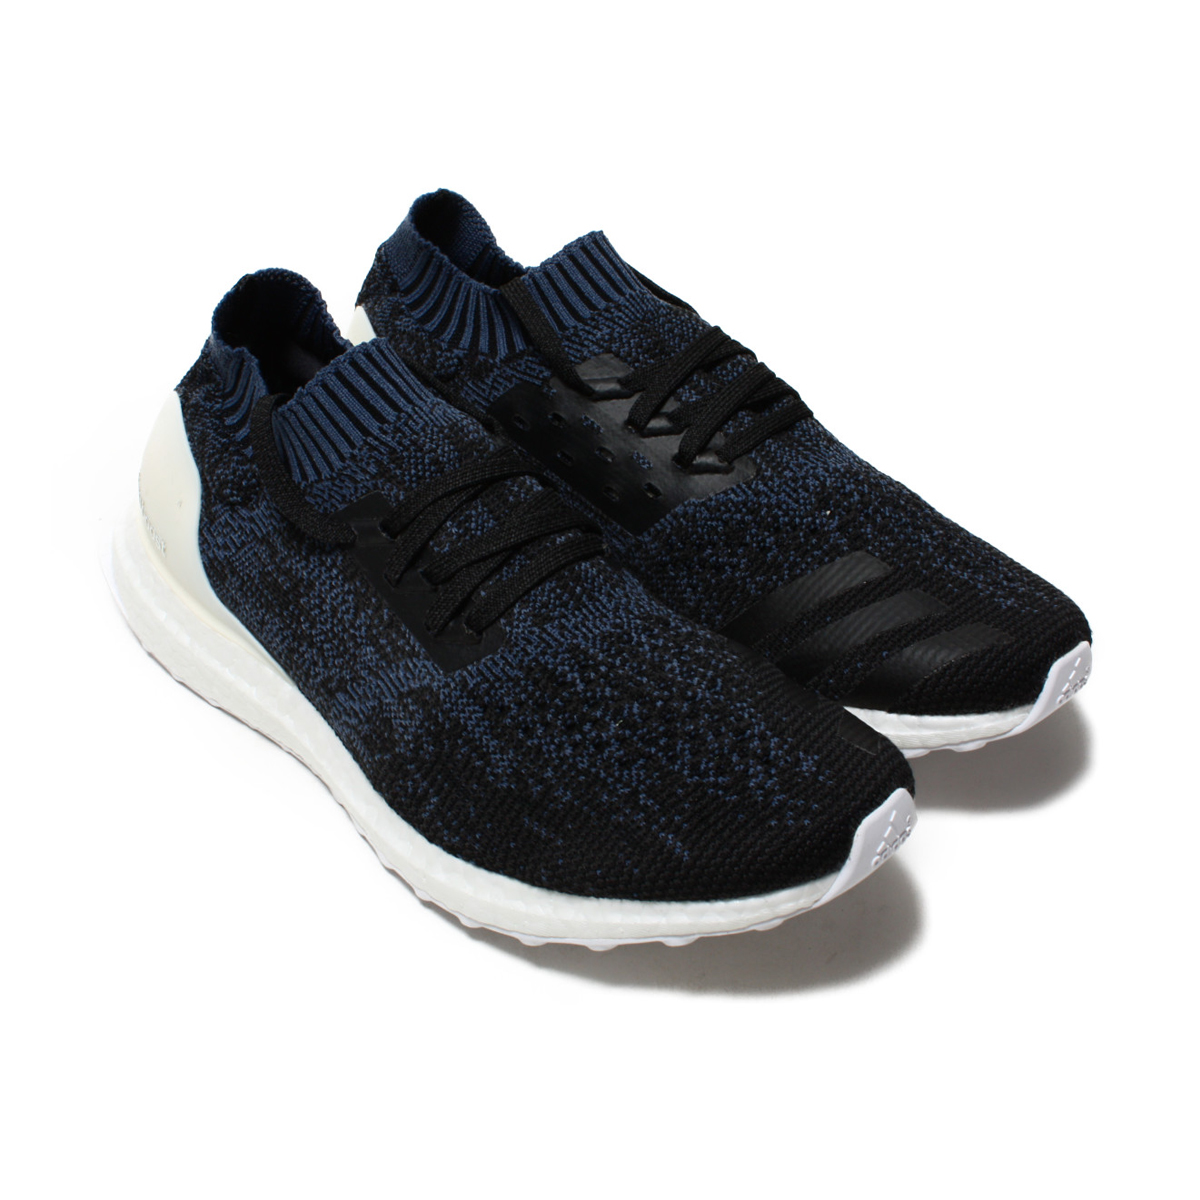 adidas UltraBOOST Uncaged (Adidas ultra boost Ann caged) Tech InkCore BlackCloud White 18FW I